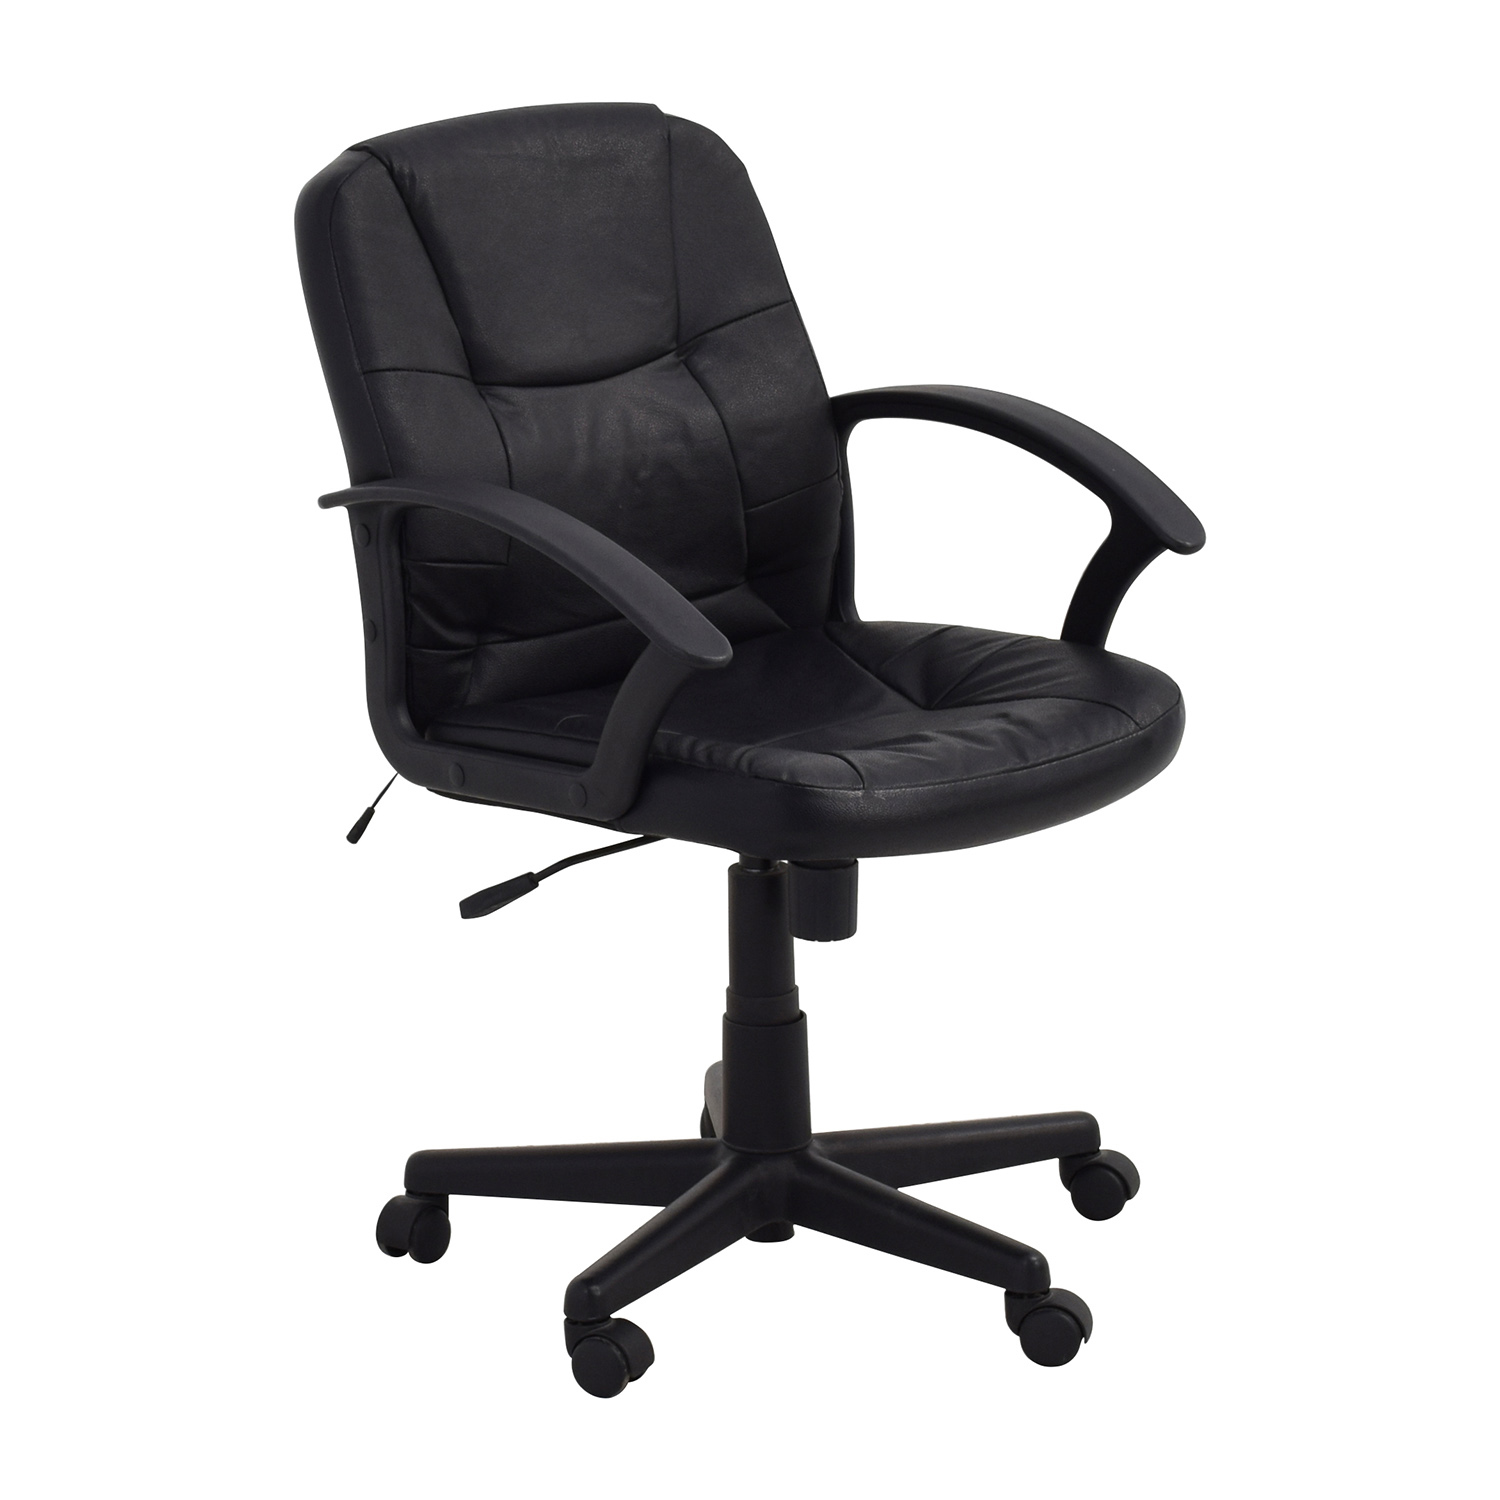 Black Leather Adjustable Desk Chair / Chairs